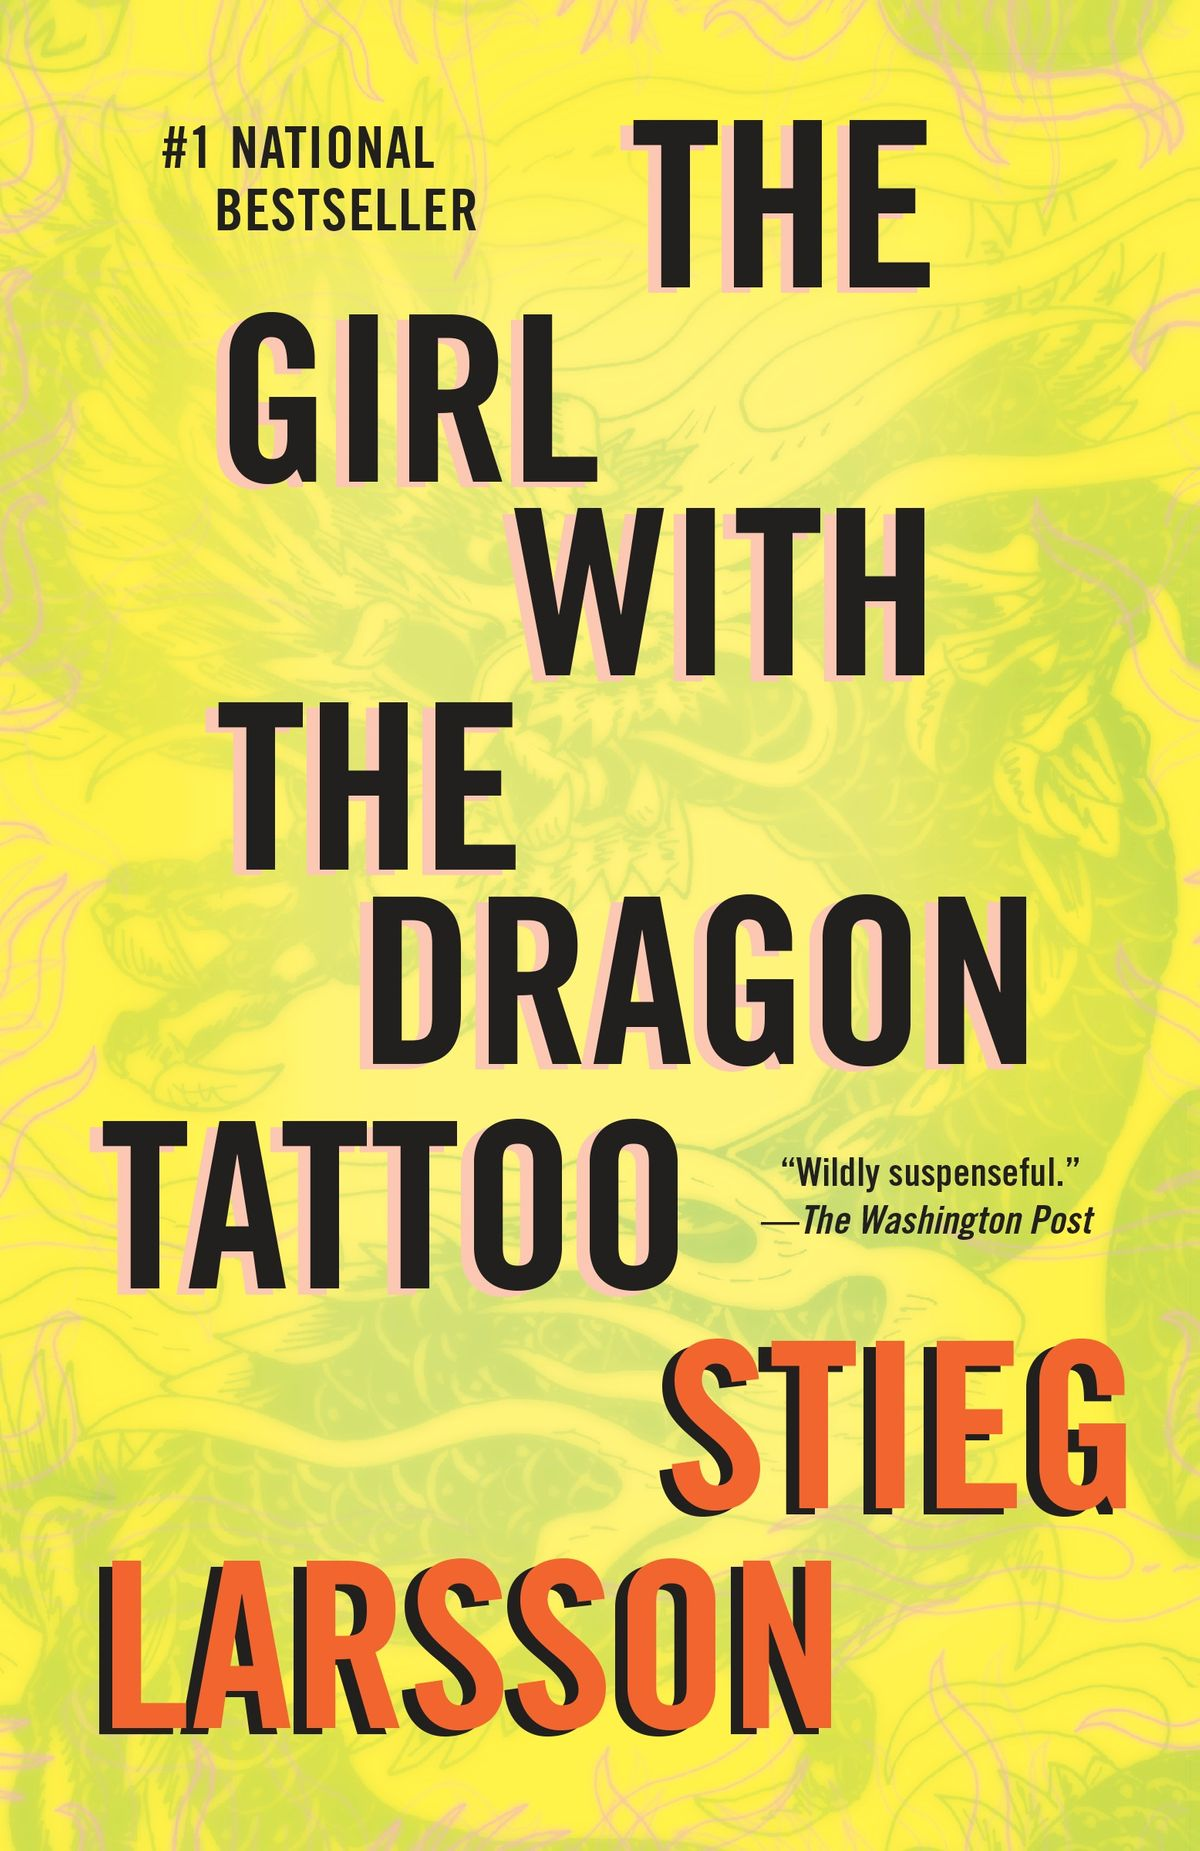 The Girl with the Dragon Tattoo Novel by Stieg Larsson